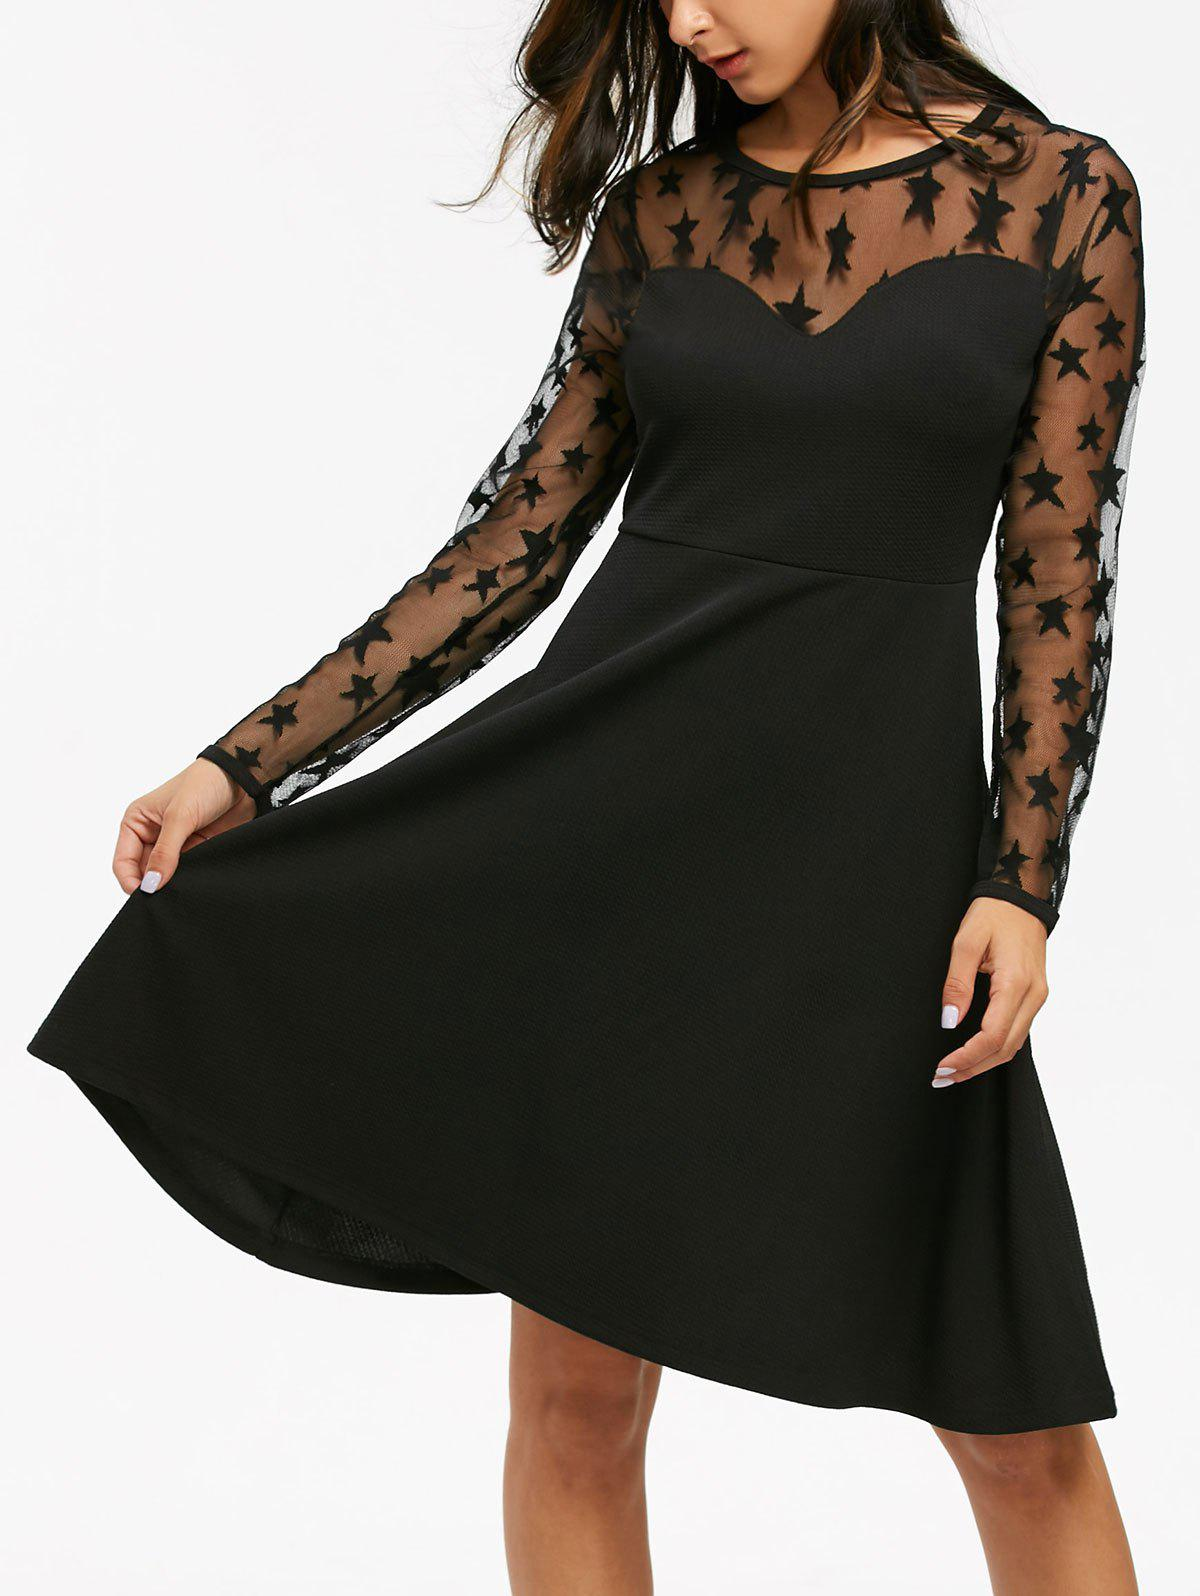 Online Starry Mesh Panel High Waist Flare Dress